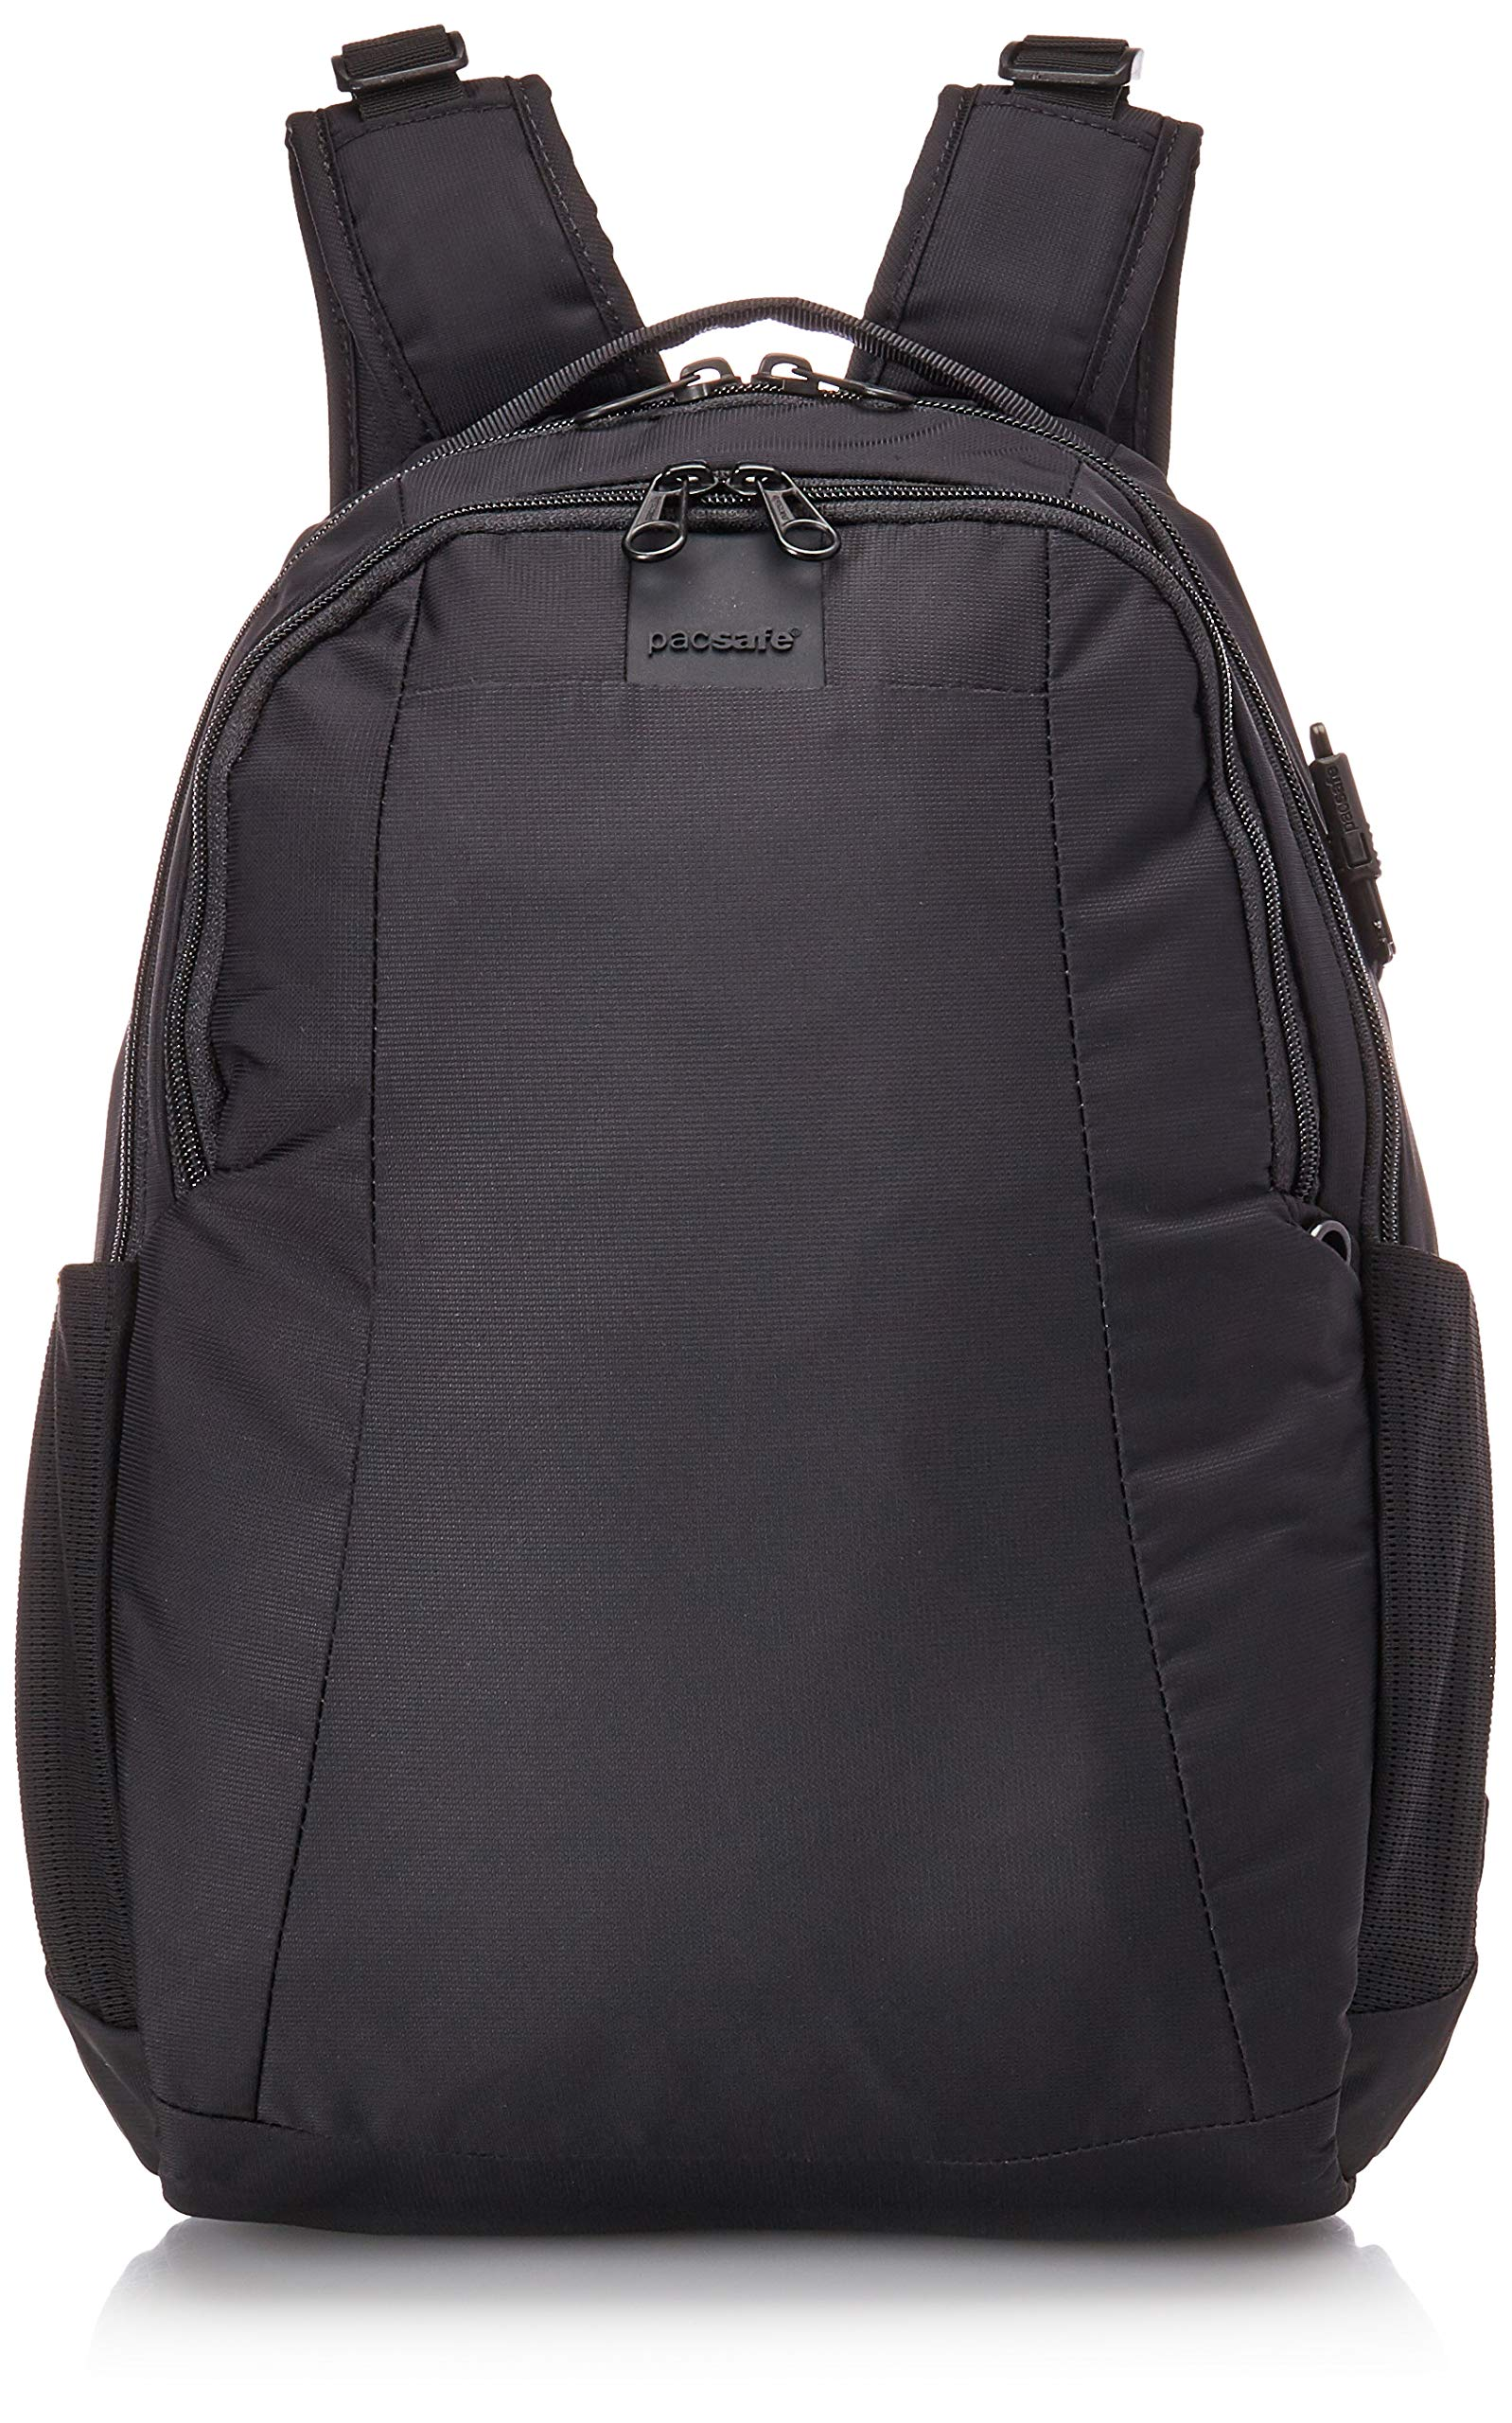 Pacsafe Metrosafe LS350 Anti-Theft 15l Travel Backpack, Black